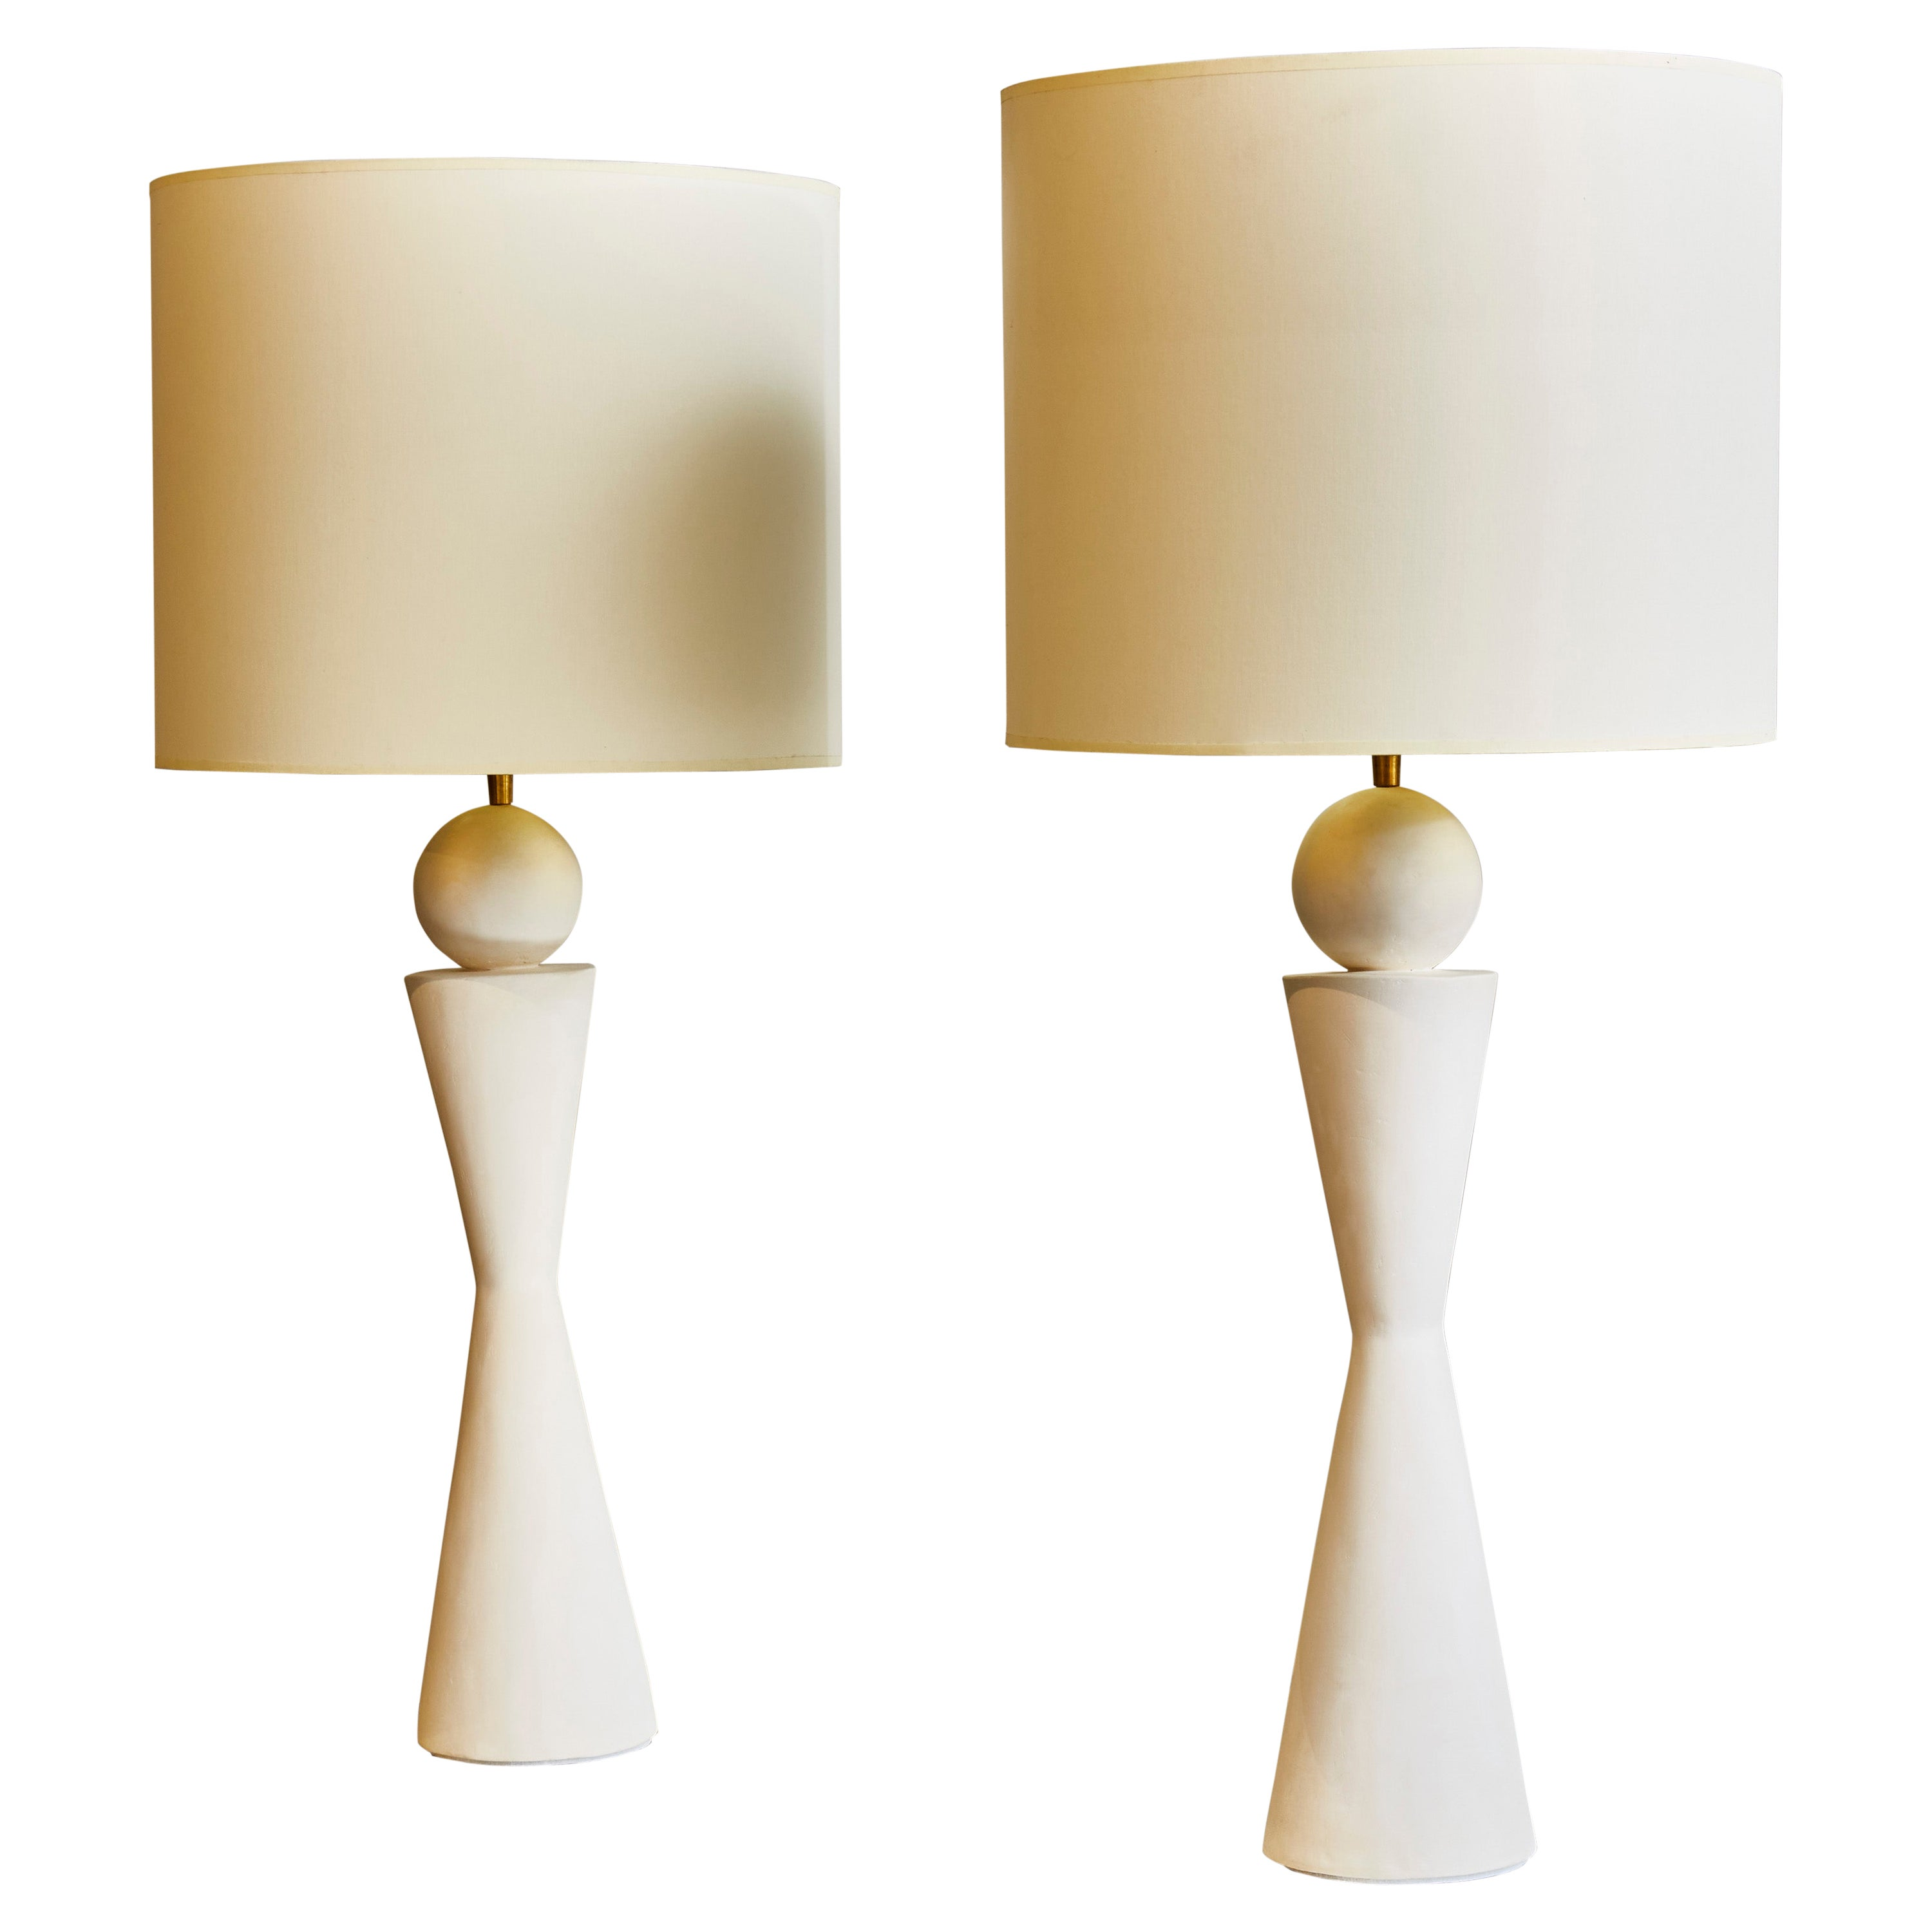 Pair of Hourglass Plaster Table Lamps